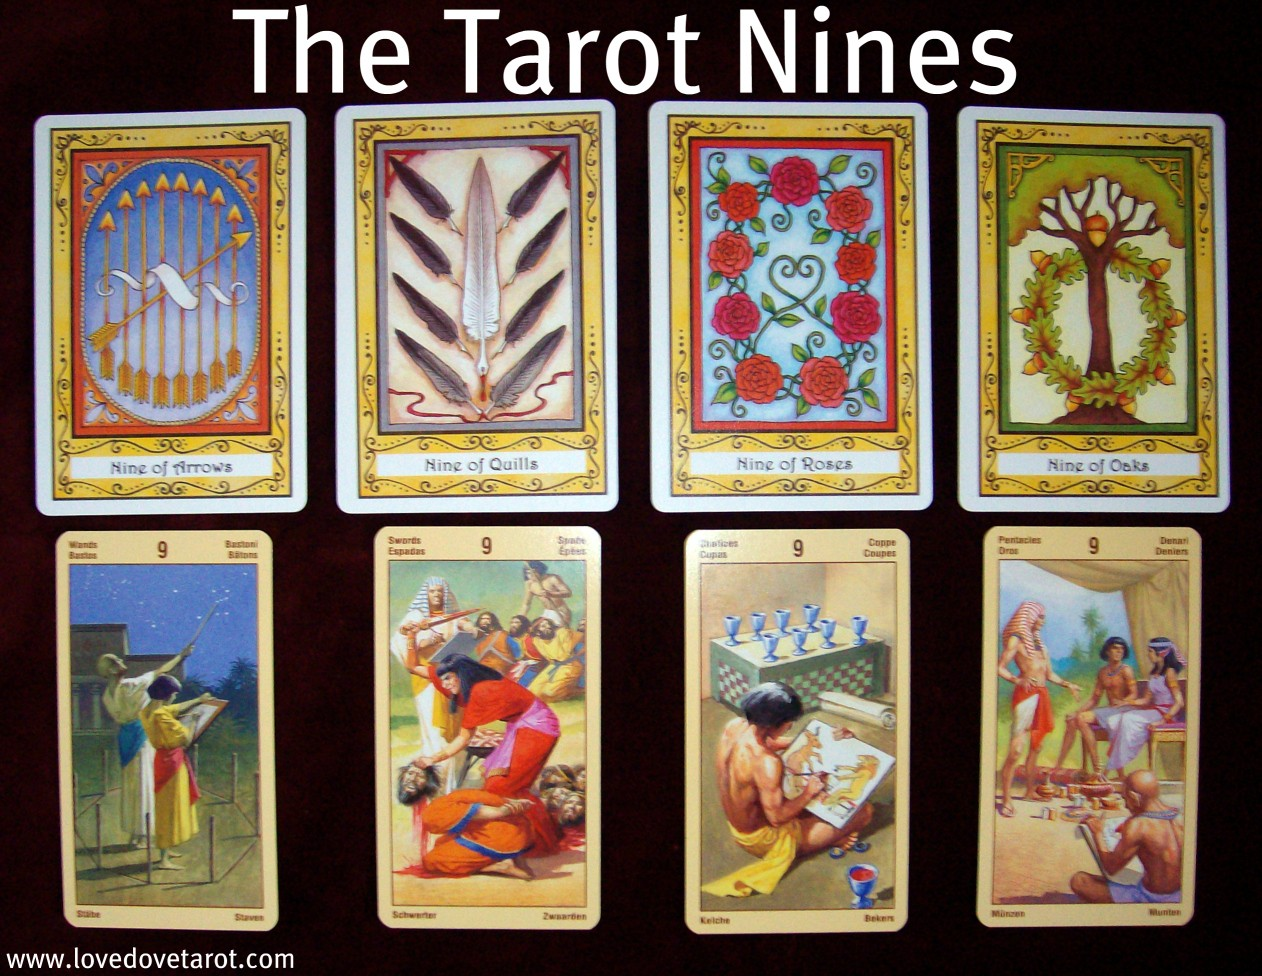 The Tarot 9's in Love